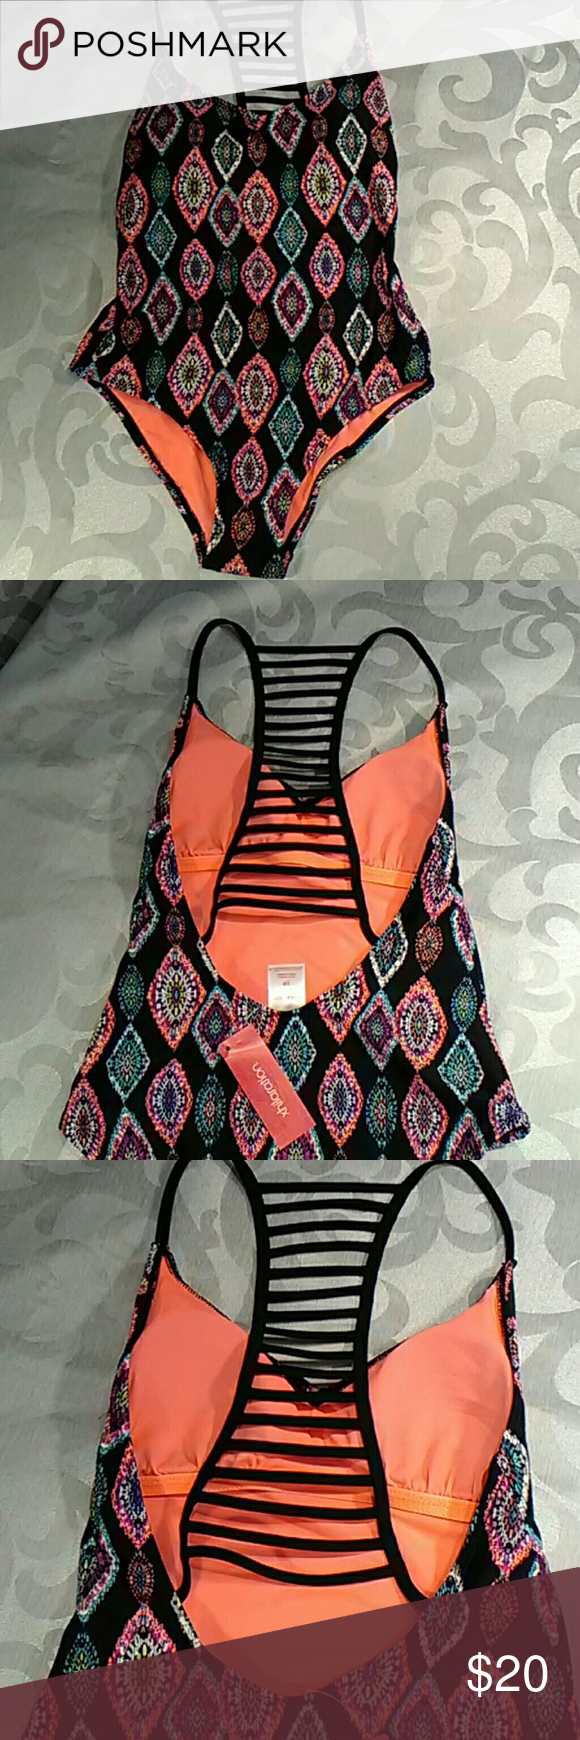 47a1c5dd771c2 Xhilaration one piece bathing suit Multi colored one piece. New with tags! Xhilaration  Swim One Pieces